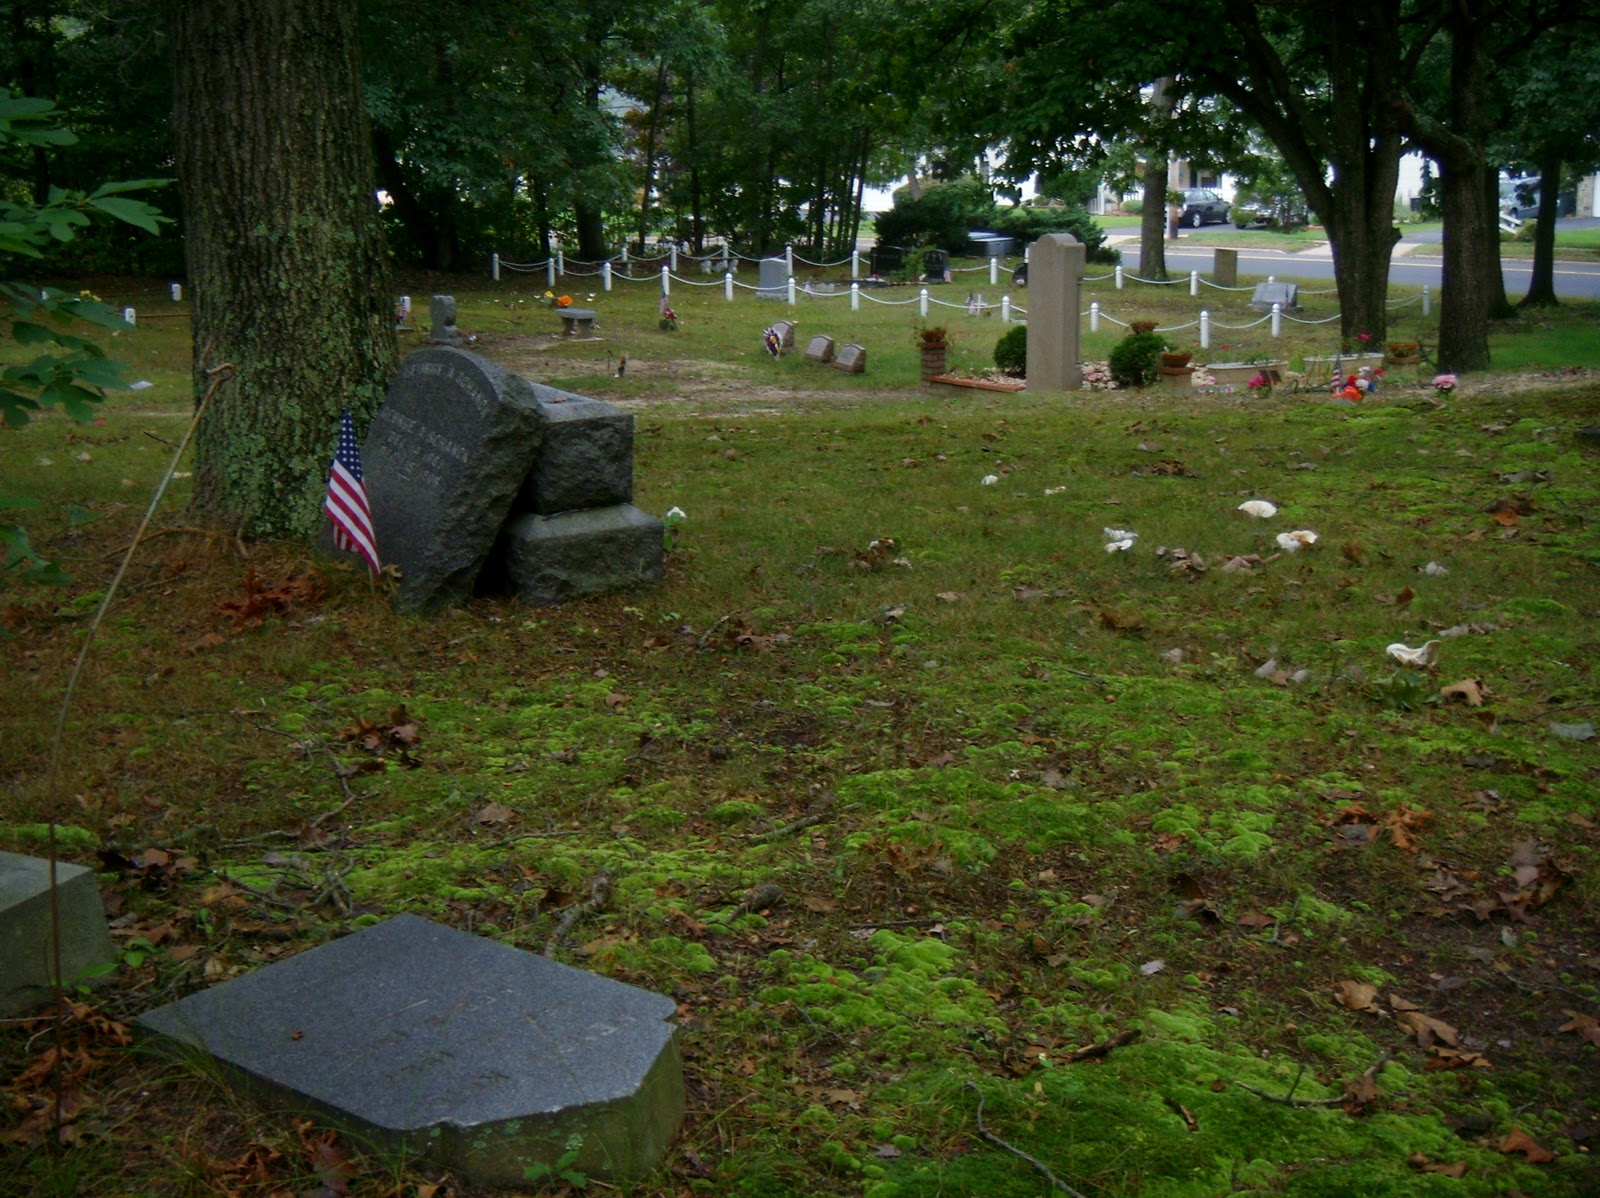 aberdeen nj life union prospect cemetery aberdeen only a few stones are toppled in this graveyard it could be a maintenance issue as opposed to vandalism